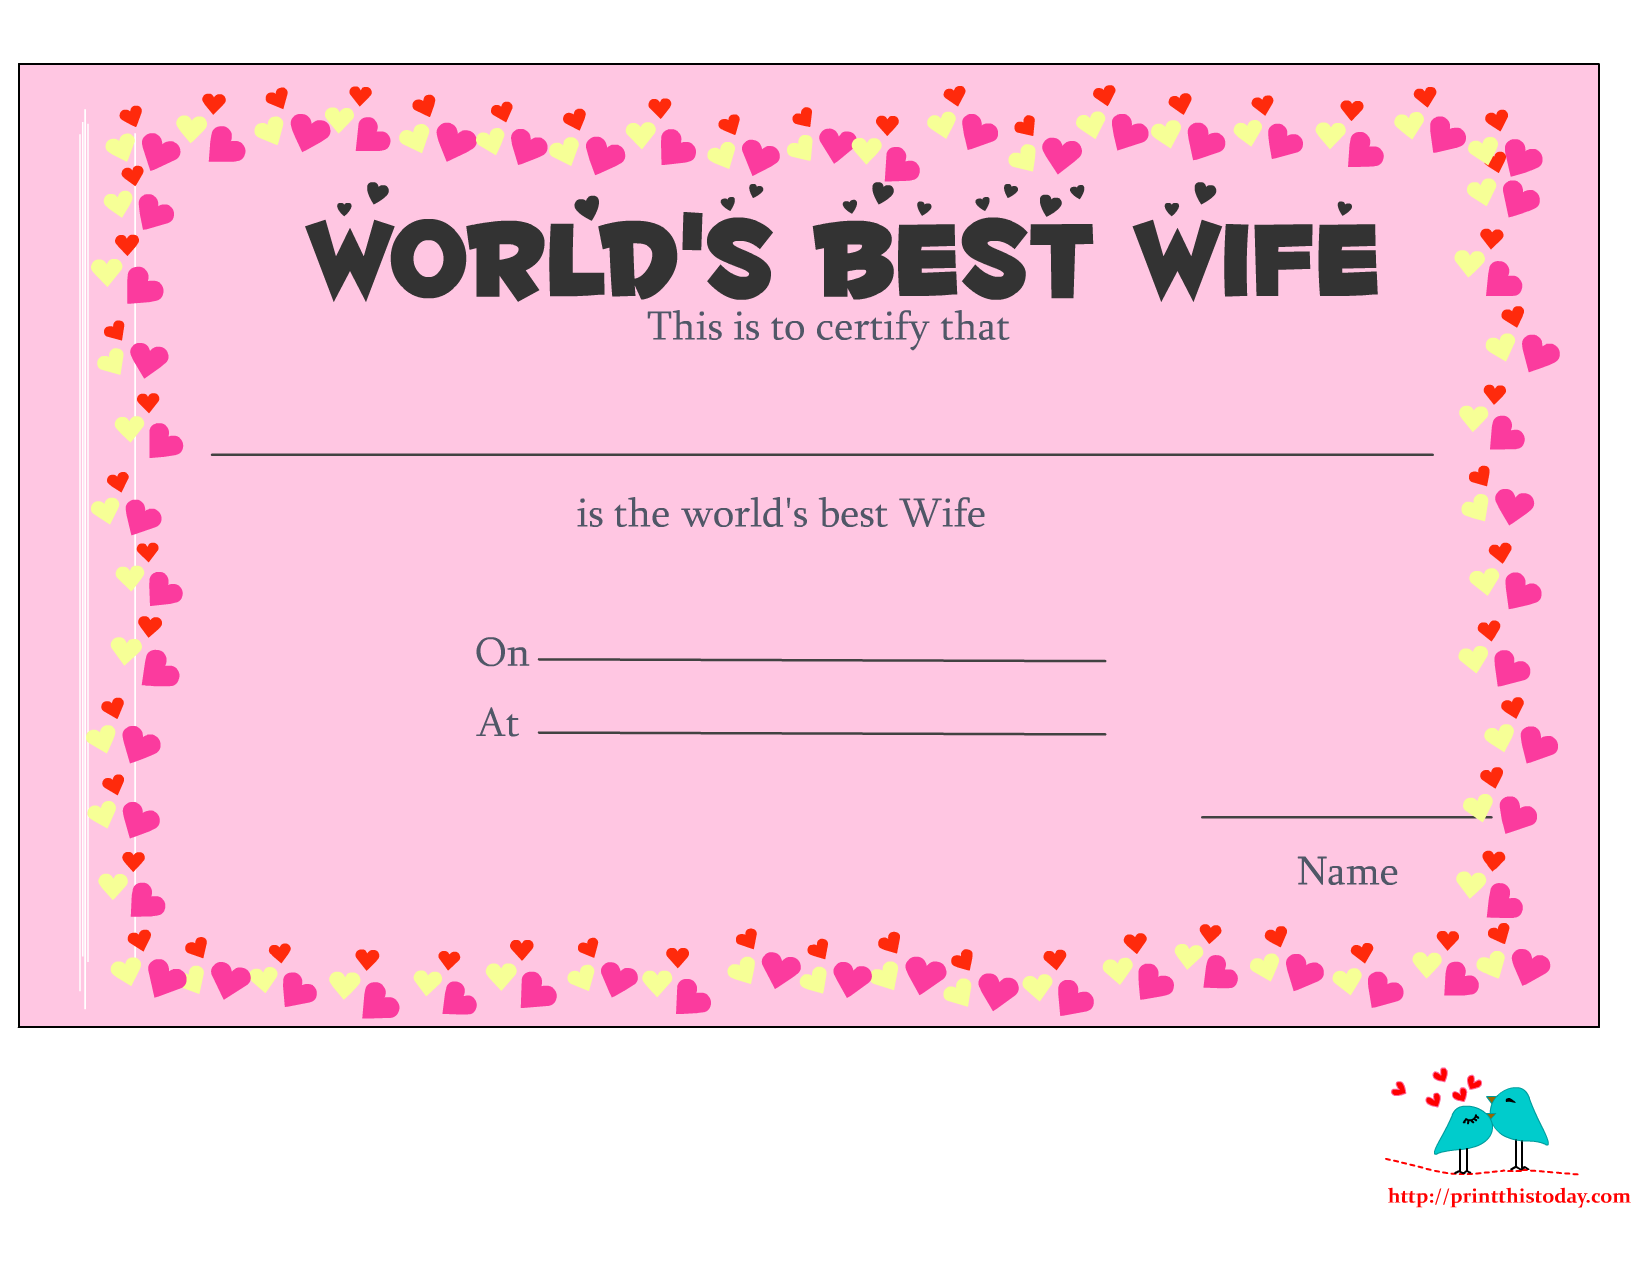 Free printable worlds best wife certificates worlds best wife certificate with hearts yadclub Image collections